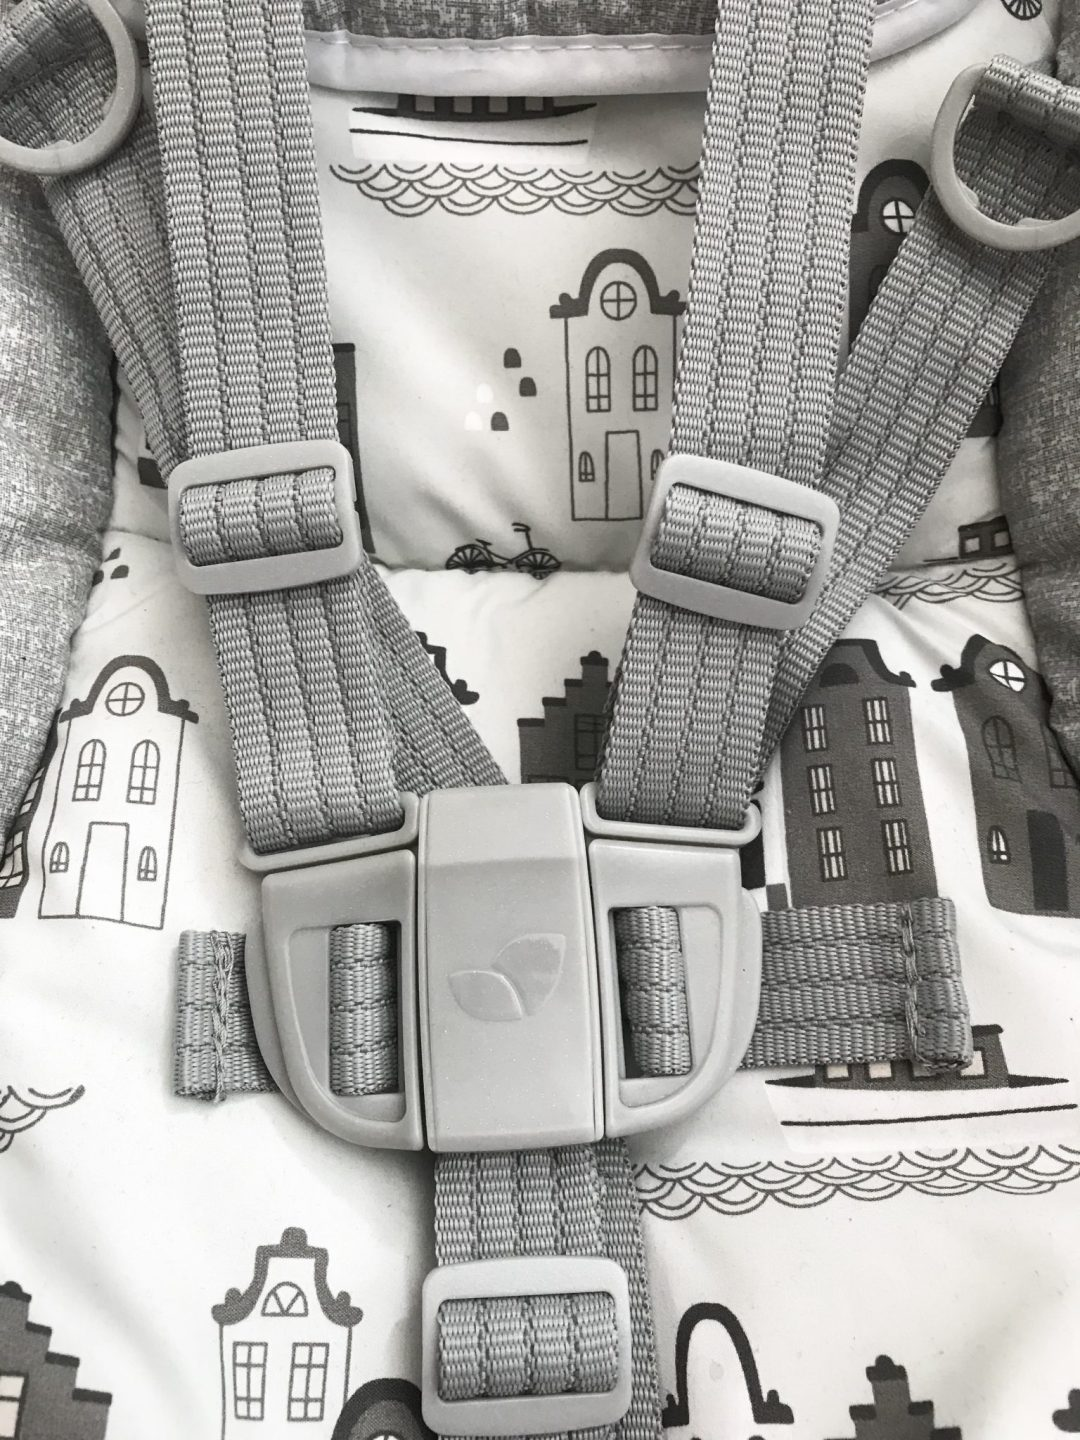 Joie Wish Petite City Baby Bouncer From Kiddies Kingdom https://lukeosaurusandme.co.uk